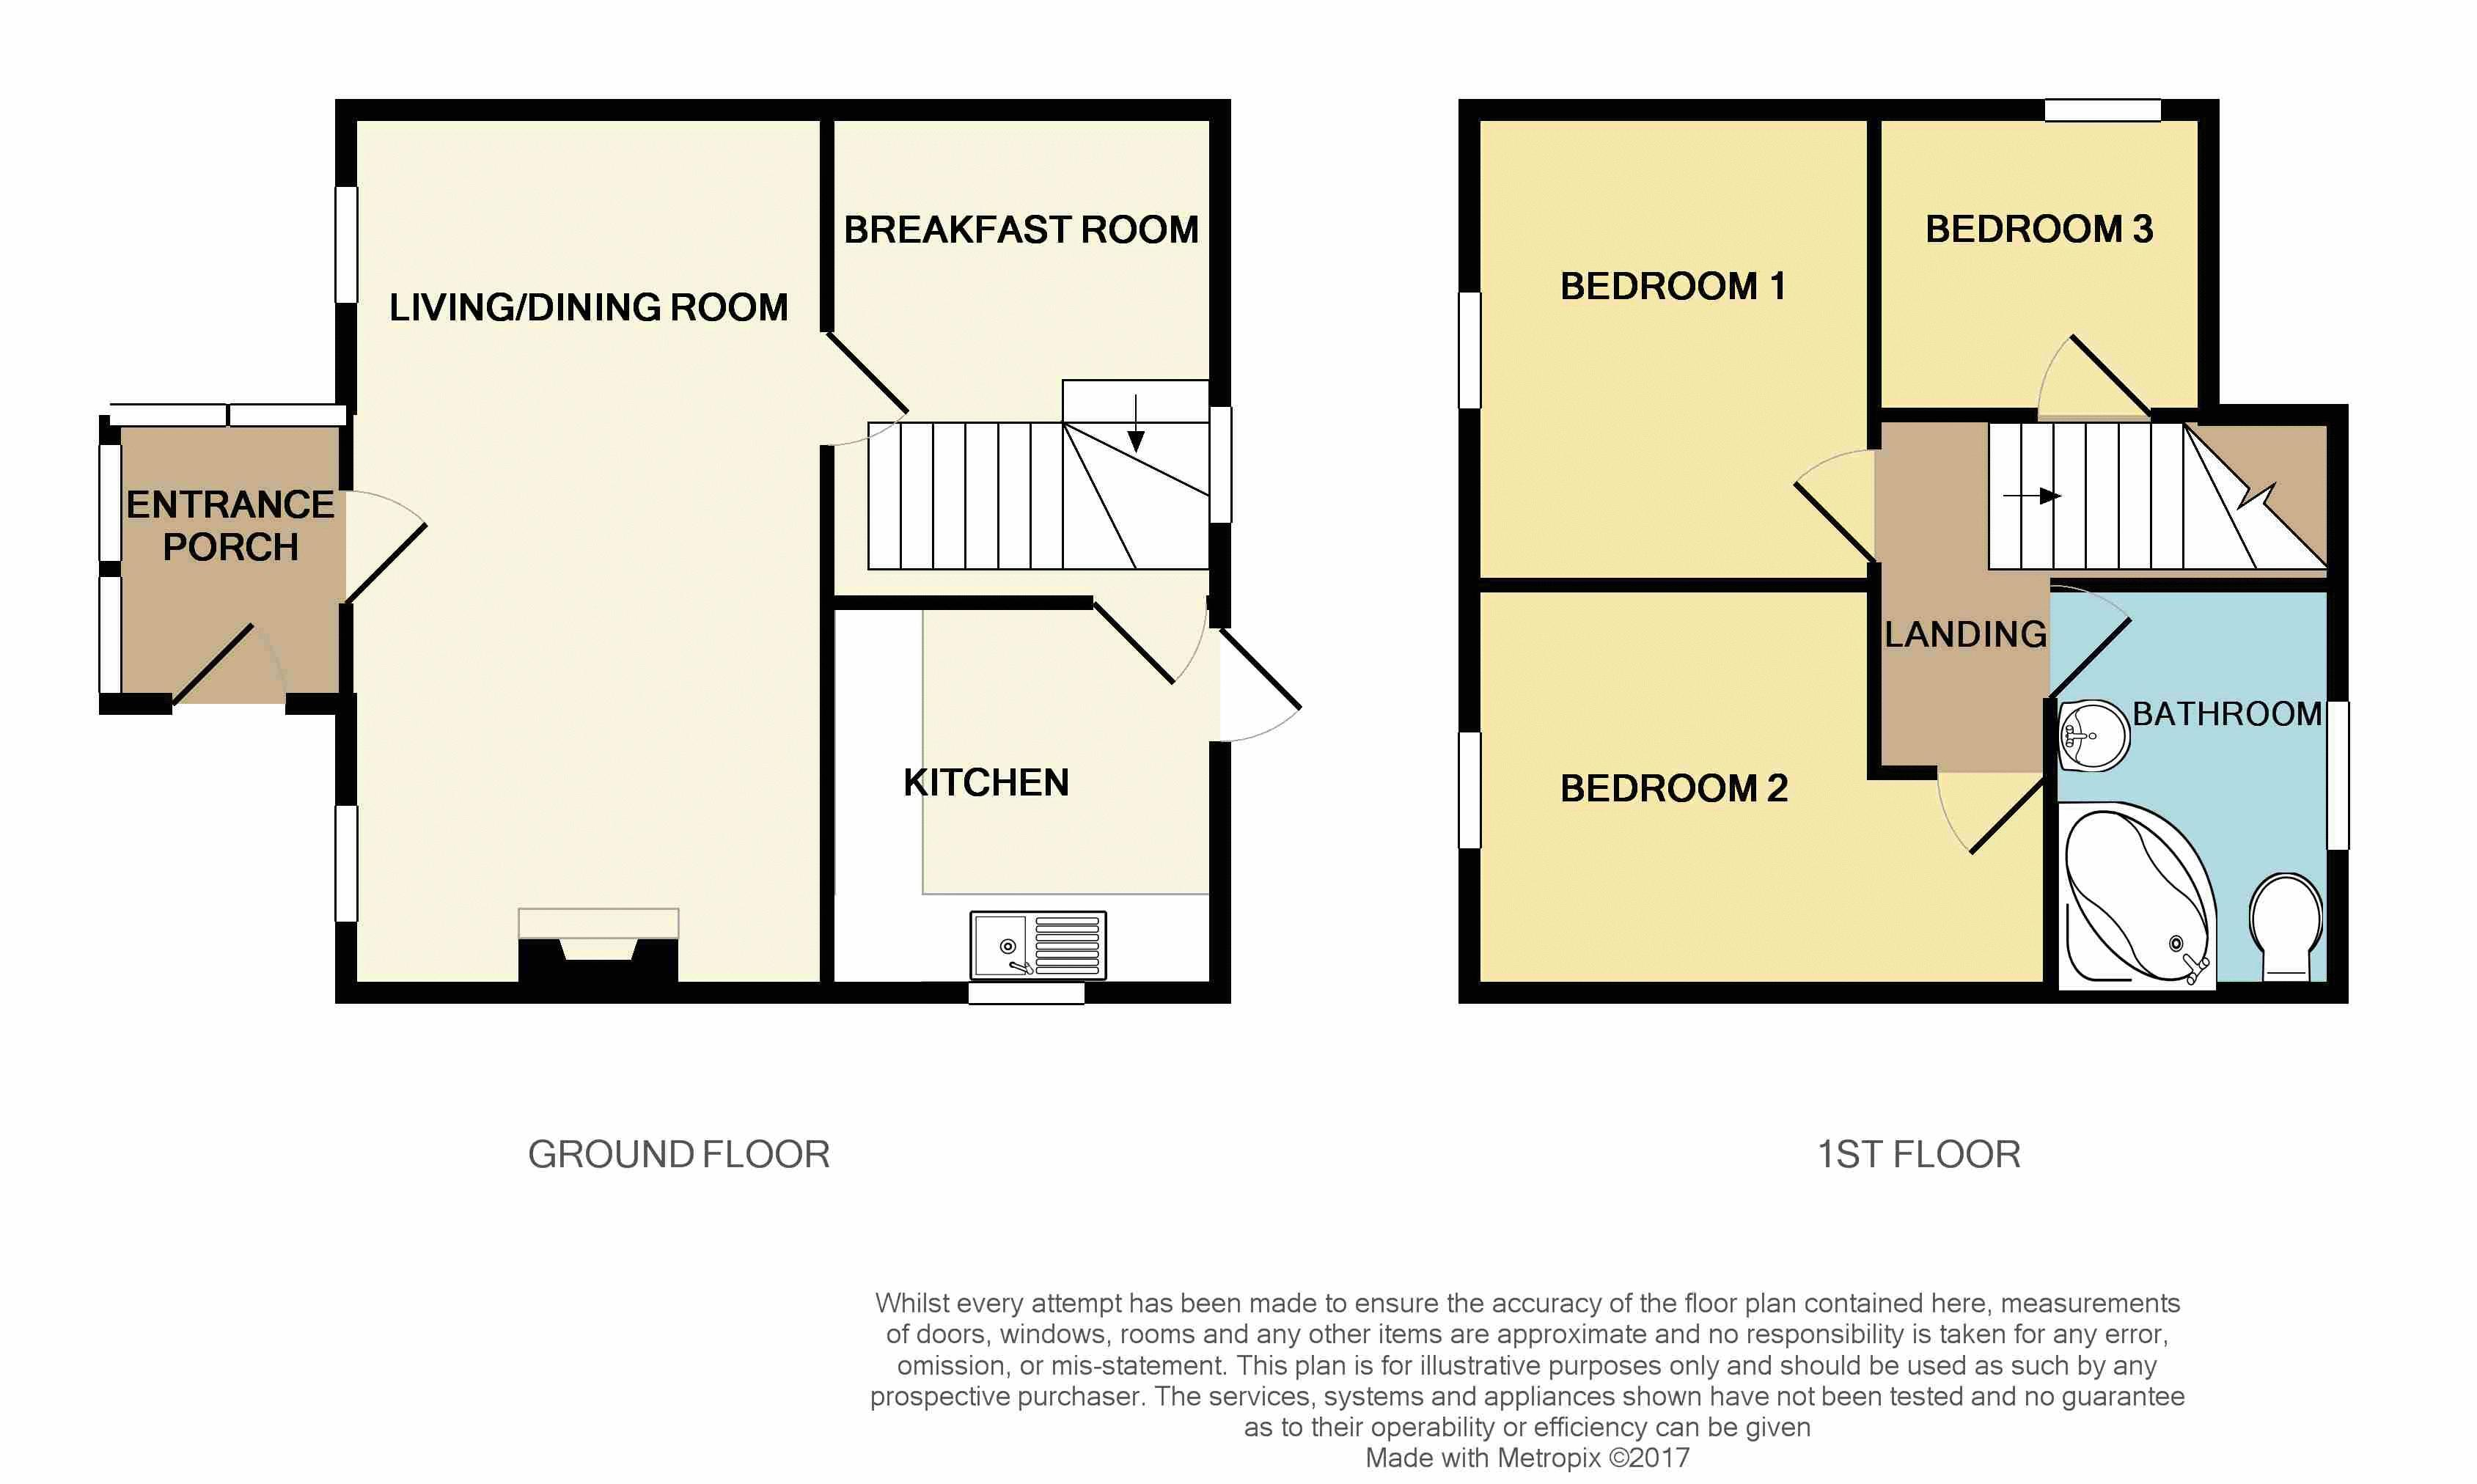 3 bedroom cottage for sale tregada launceston pl pl15 9na for 15 dunham place floor plans